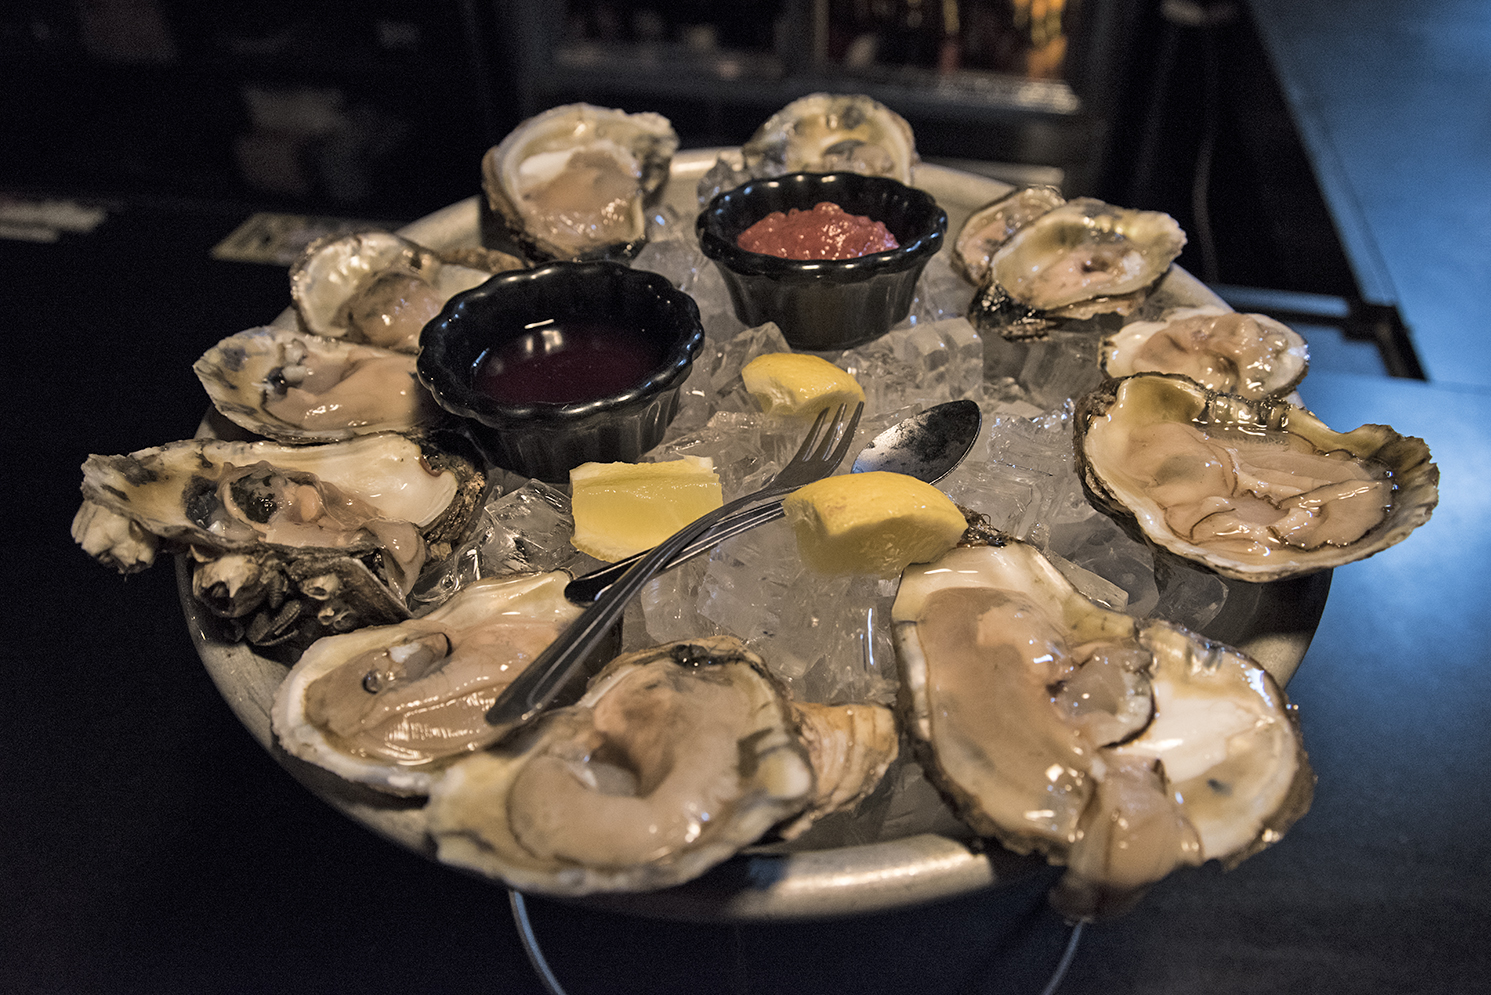 ROCK MAMA NYC LIFESTYLE BLOG - oyster lover?